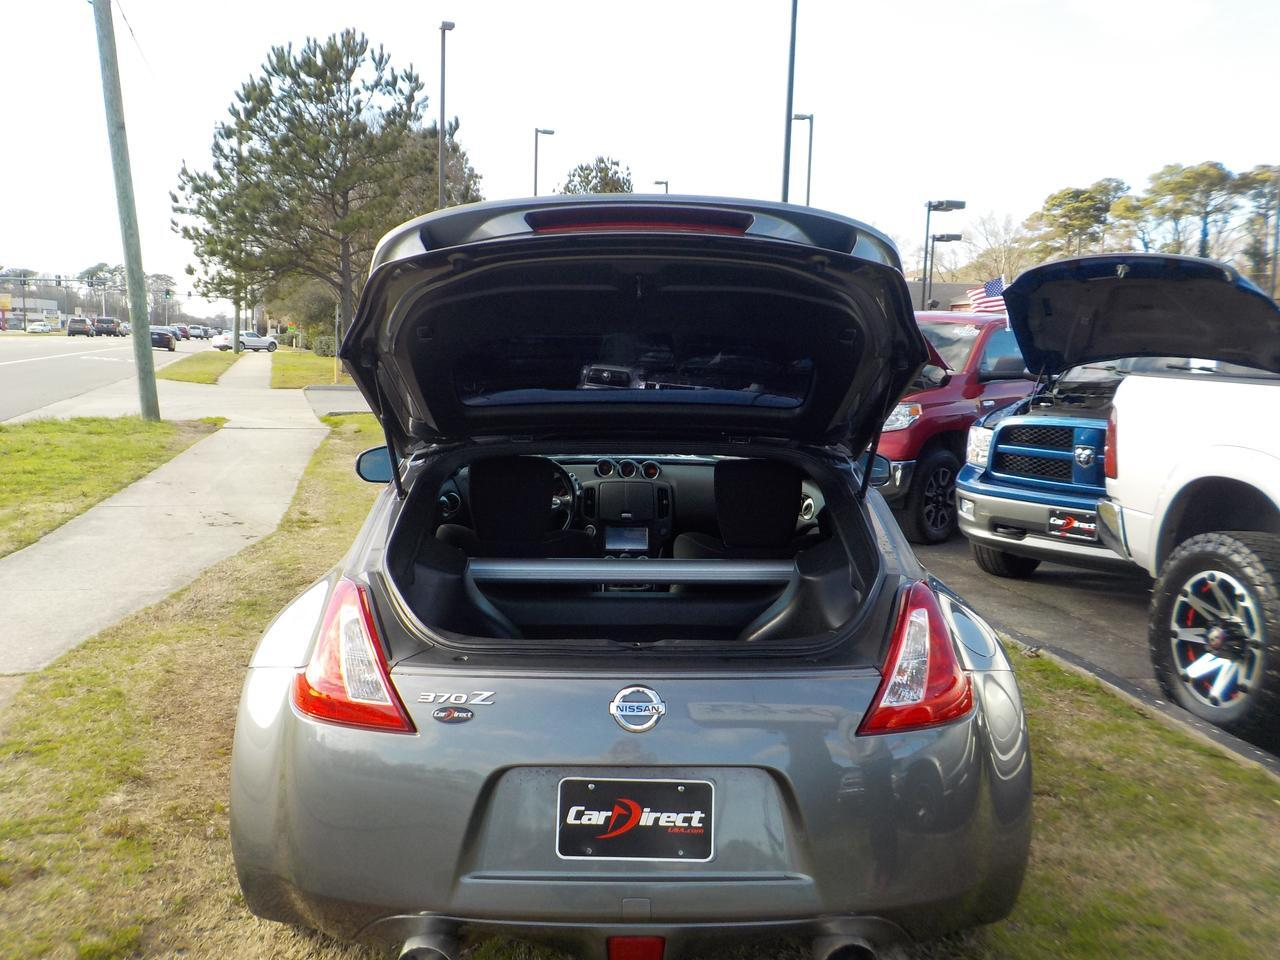 2013 NISSAN 370Z COUPE MANUAL RWD, WARRANTY, KEYLESS ENTRY & START, NAVIGATION, DAYTIME RUNNING LIGHTS! Virginia Beach VA